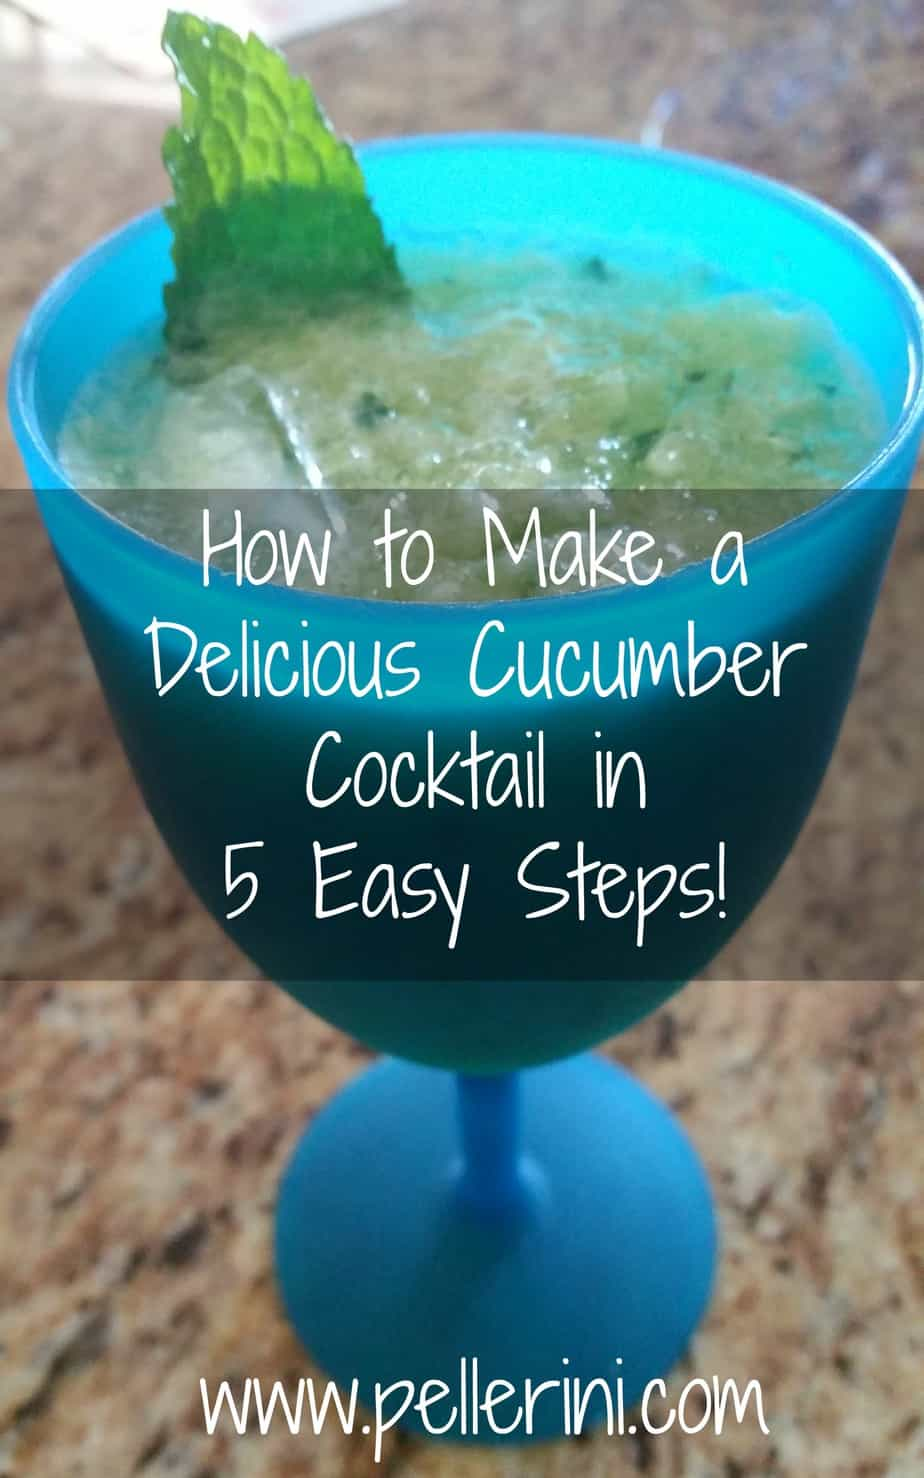 How to Make a Delicious Cucumber Cocktail in 5 Easy Steps